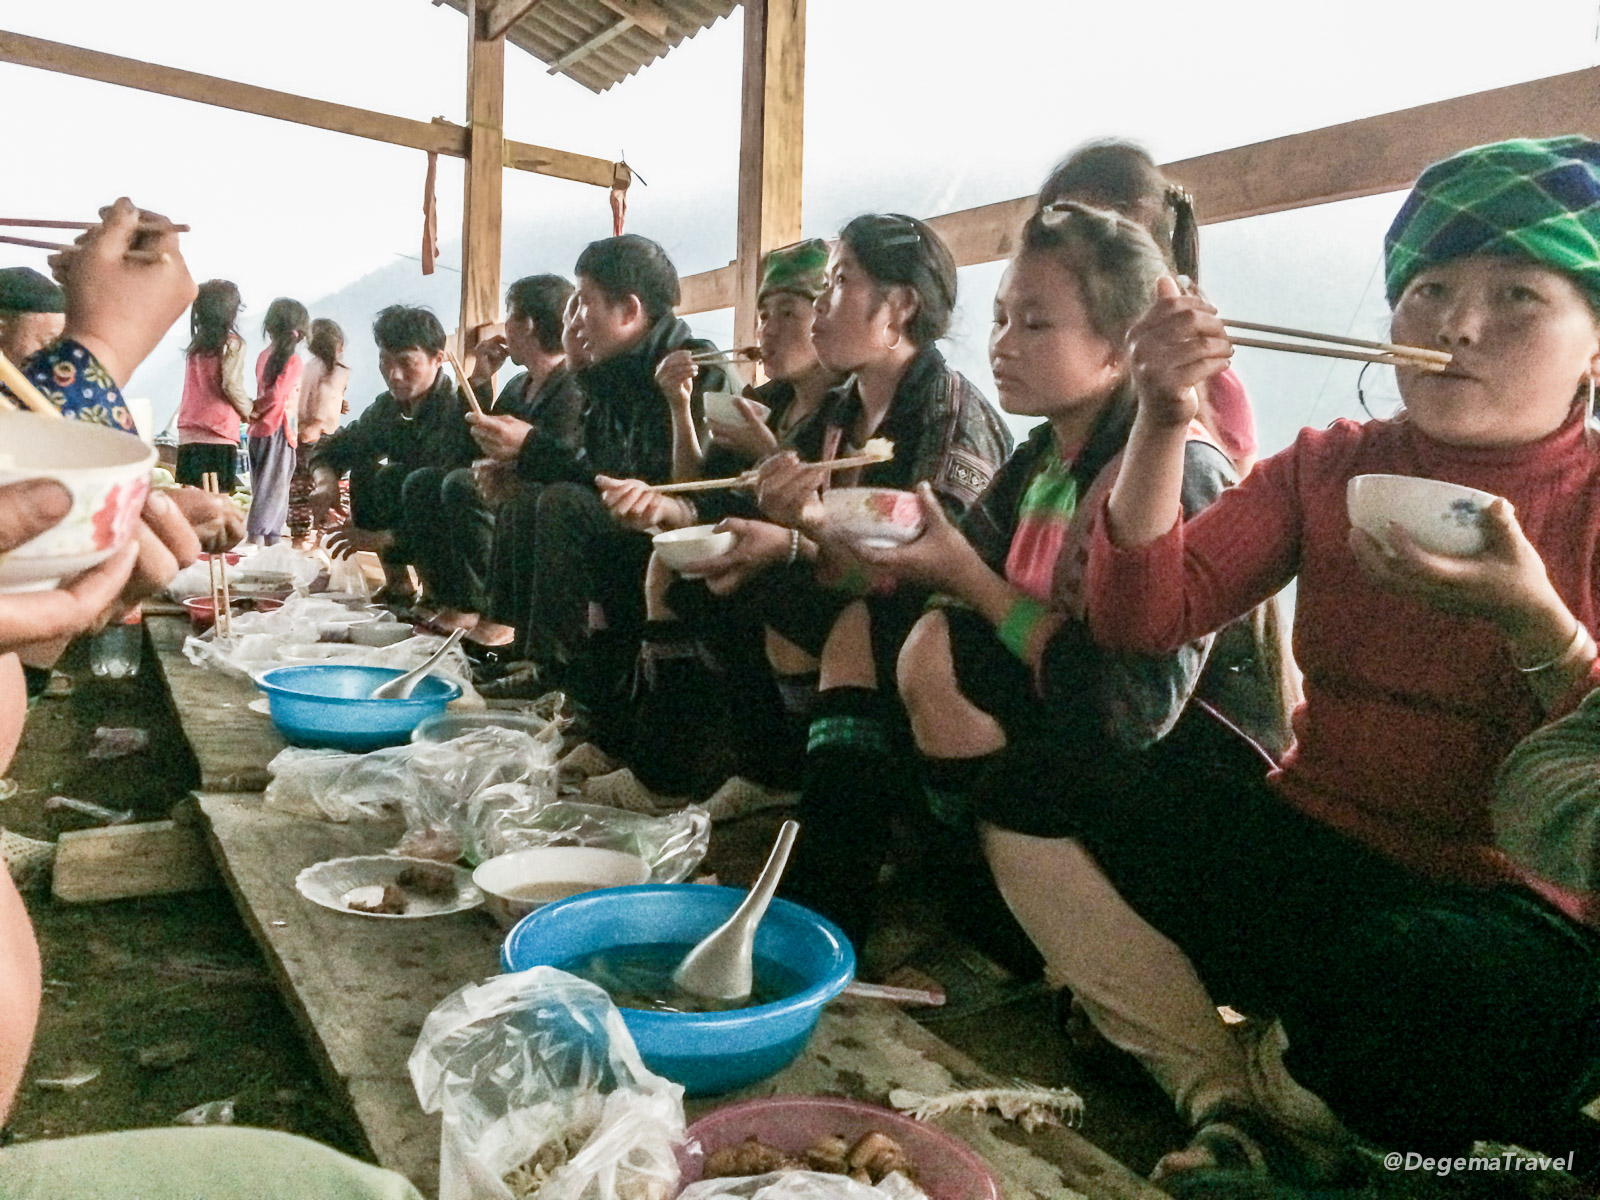 A communal meal in the house under construction in the Mường Hoa Valley near Sapa, Vietnam